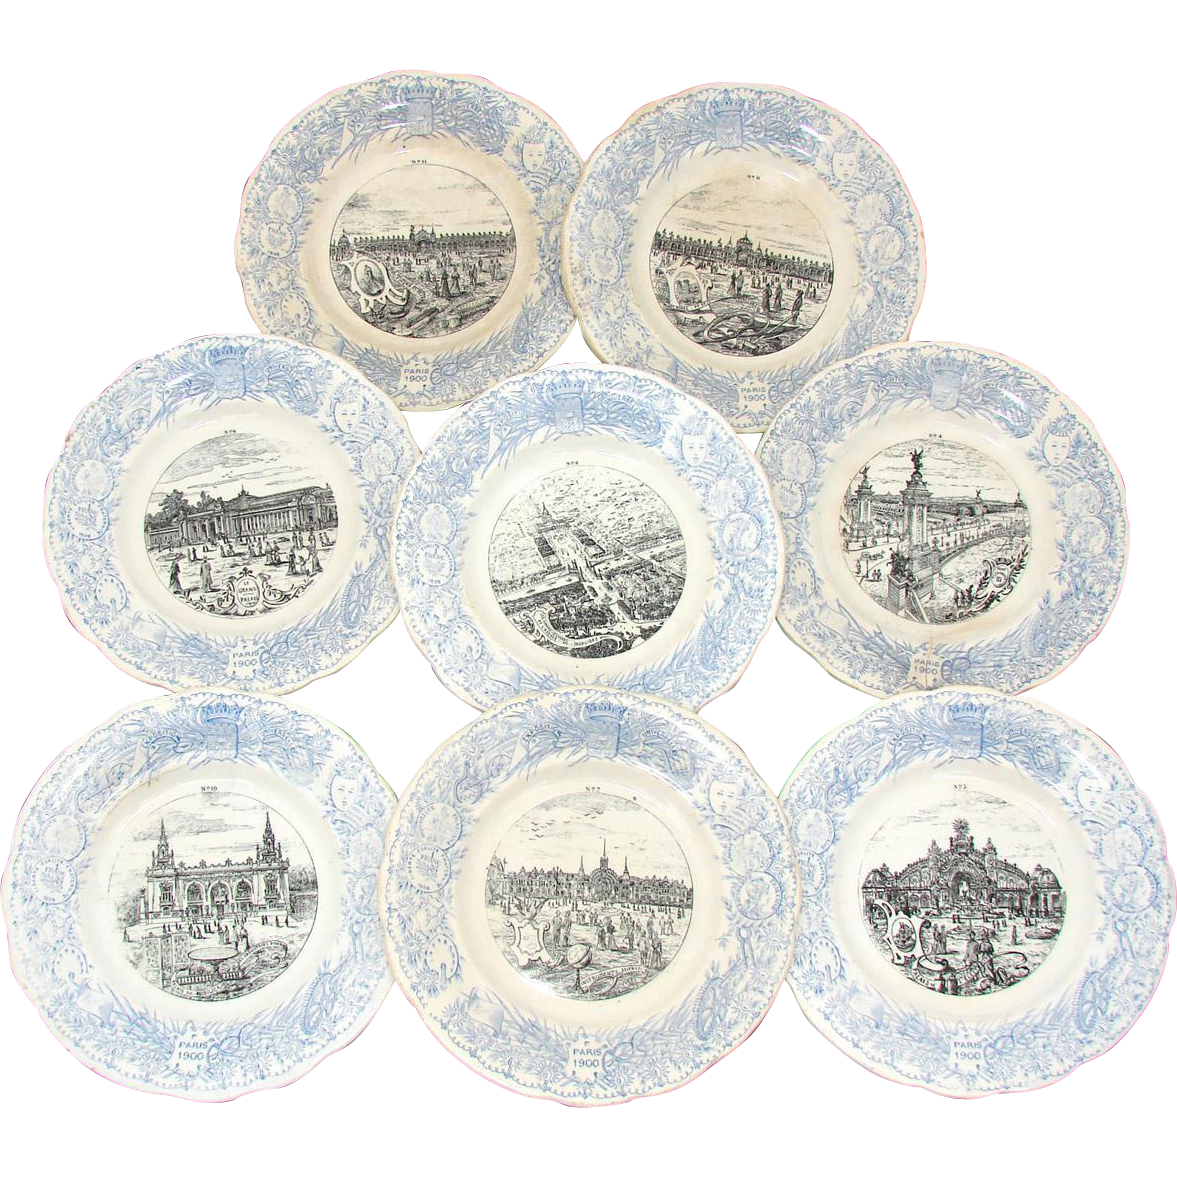 FABU 8pc Antique Antique World Expo 8&quot; Cabinet Plate Set, Paris 1900